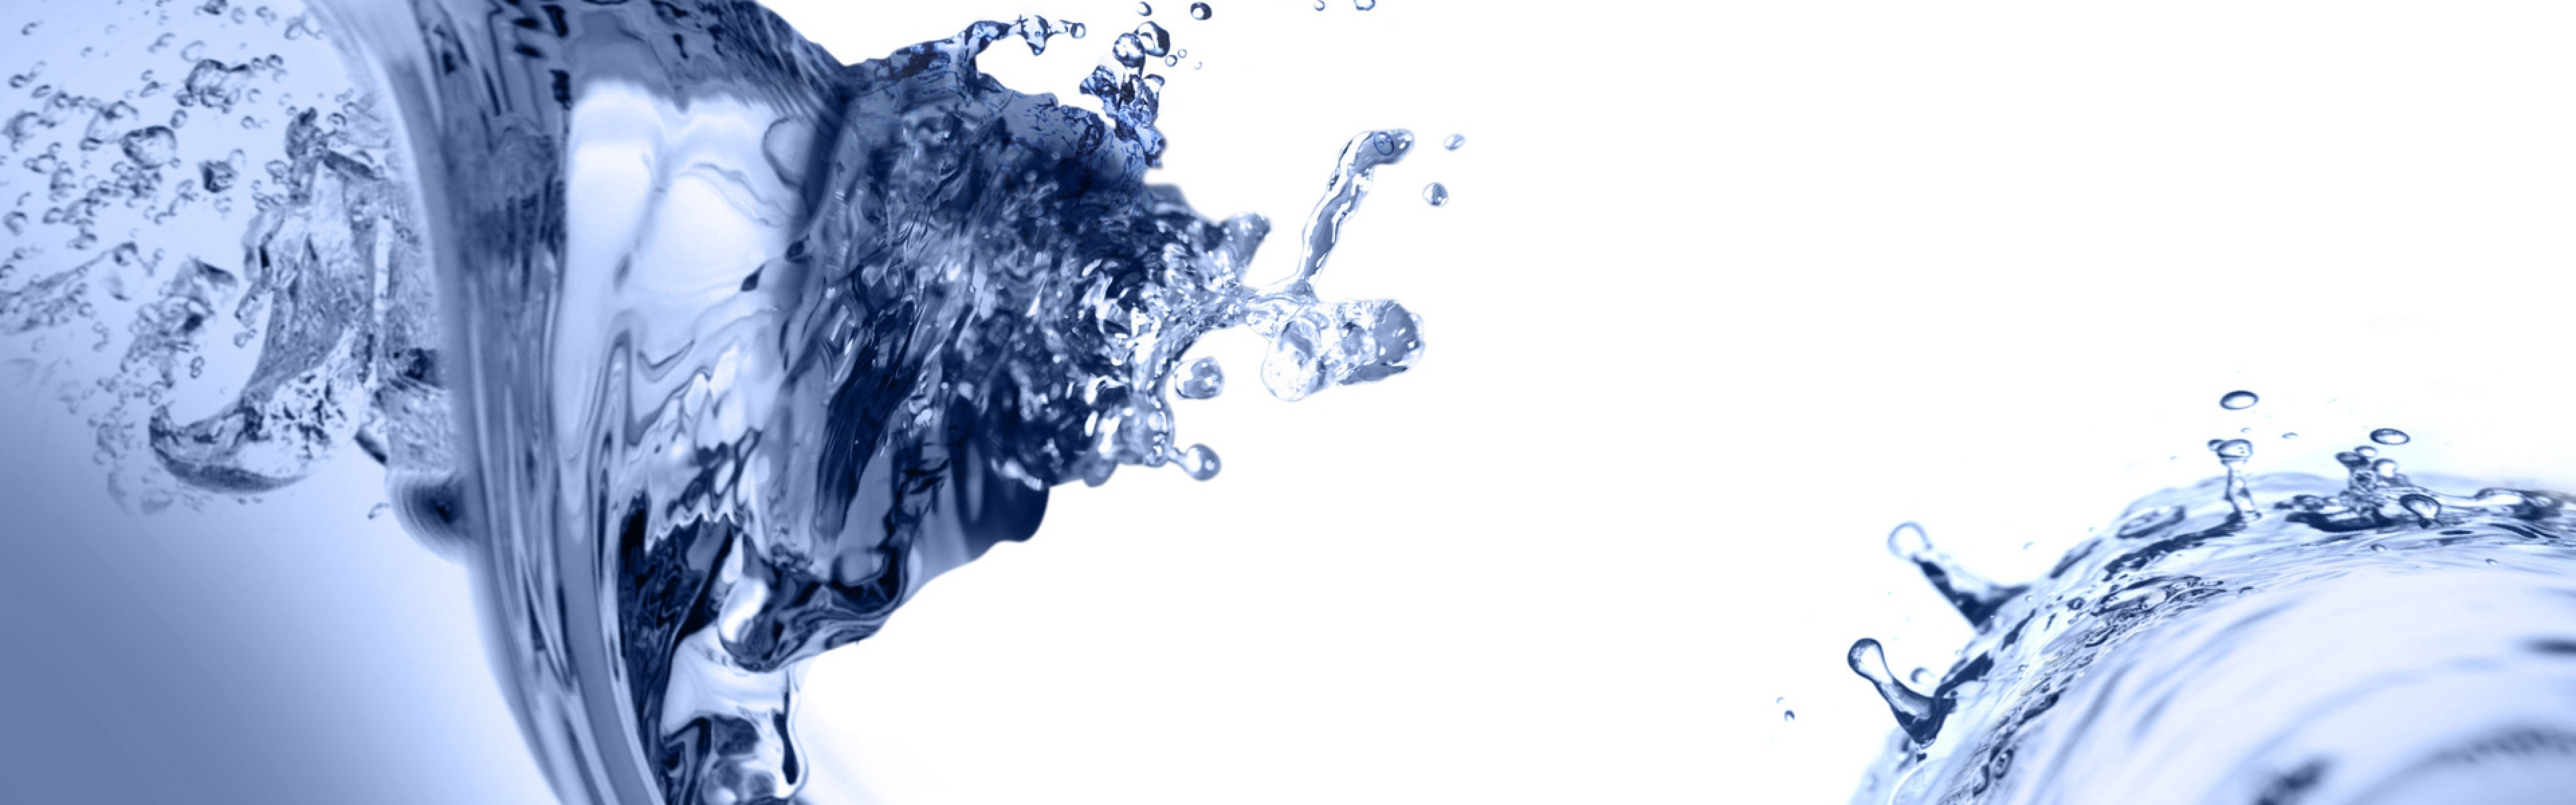 spray_water_wave_17850_3840x1200